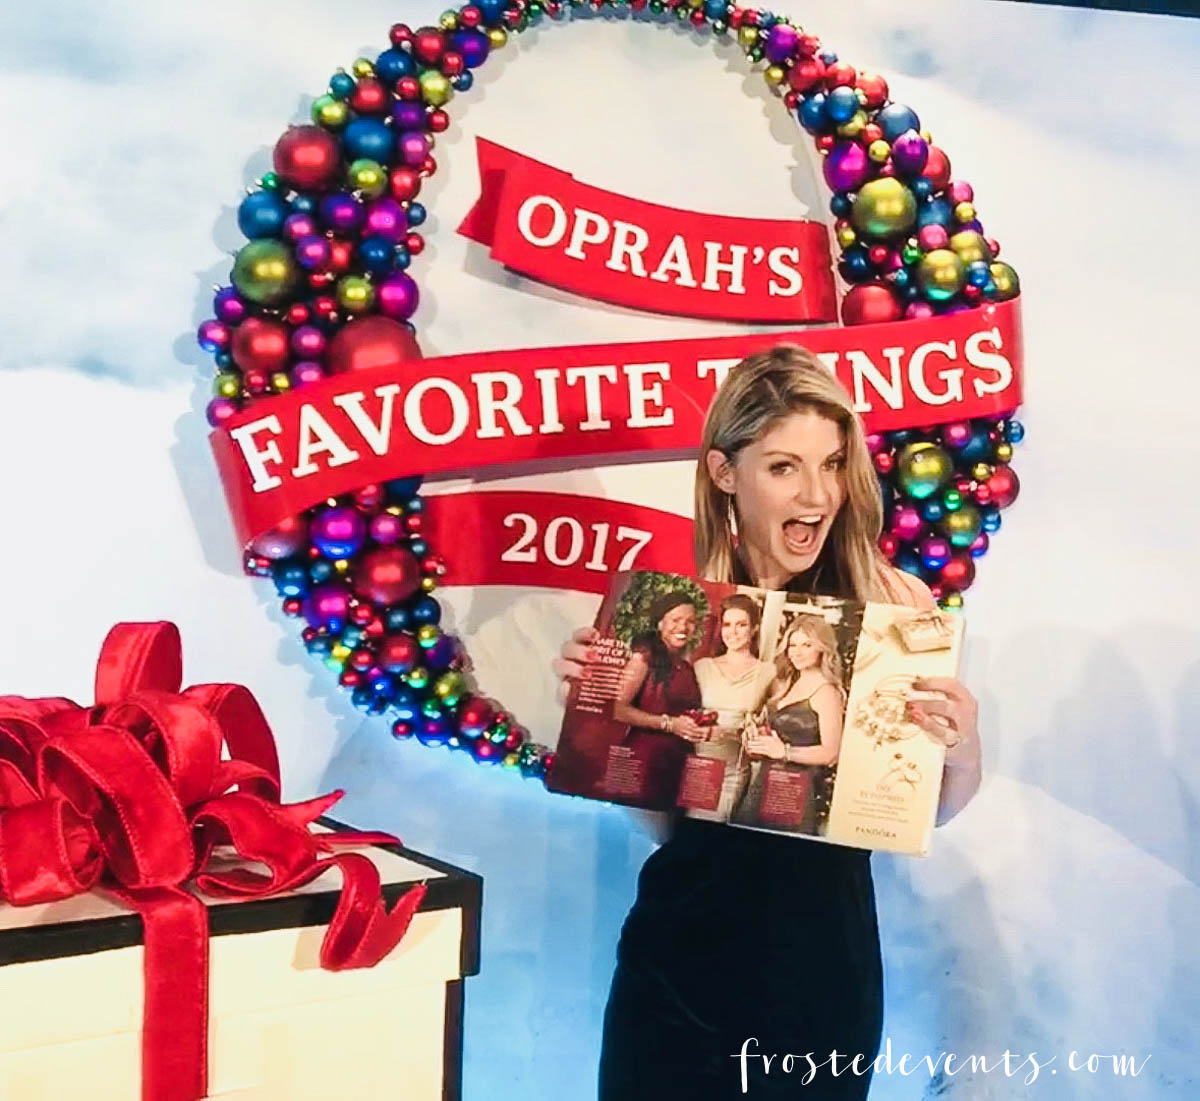 Oprah's Favorite Things 2017 Party - How this mom got to go to the best holiday party ever, get all the gifts and drink tequila with Oprah Winfrey -via Misty Nelson, mom blogger and influencer @frostedevents frostedblog.com